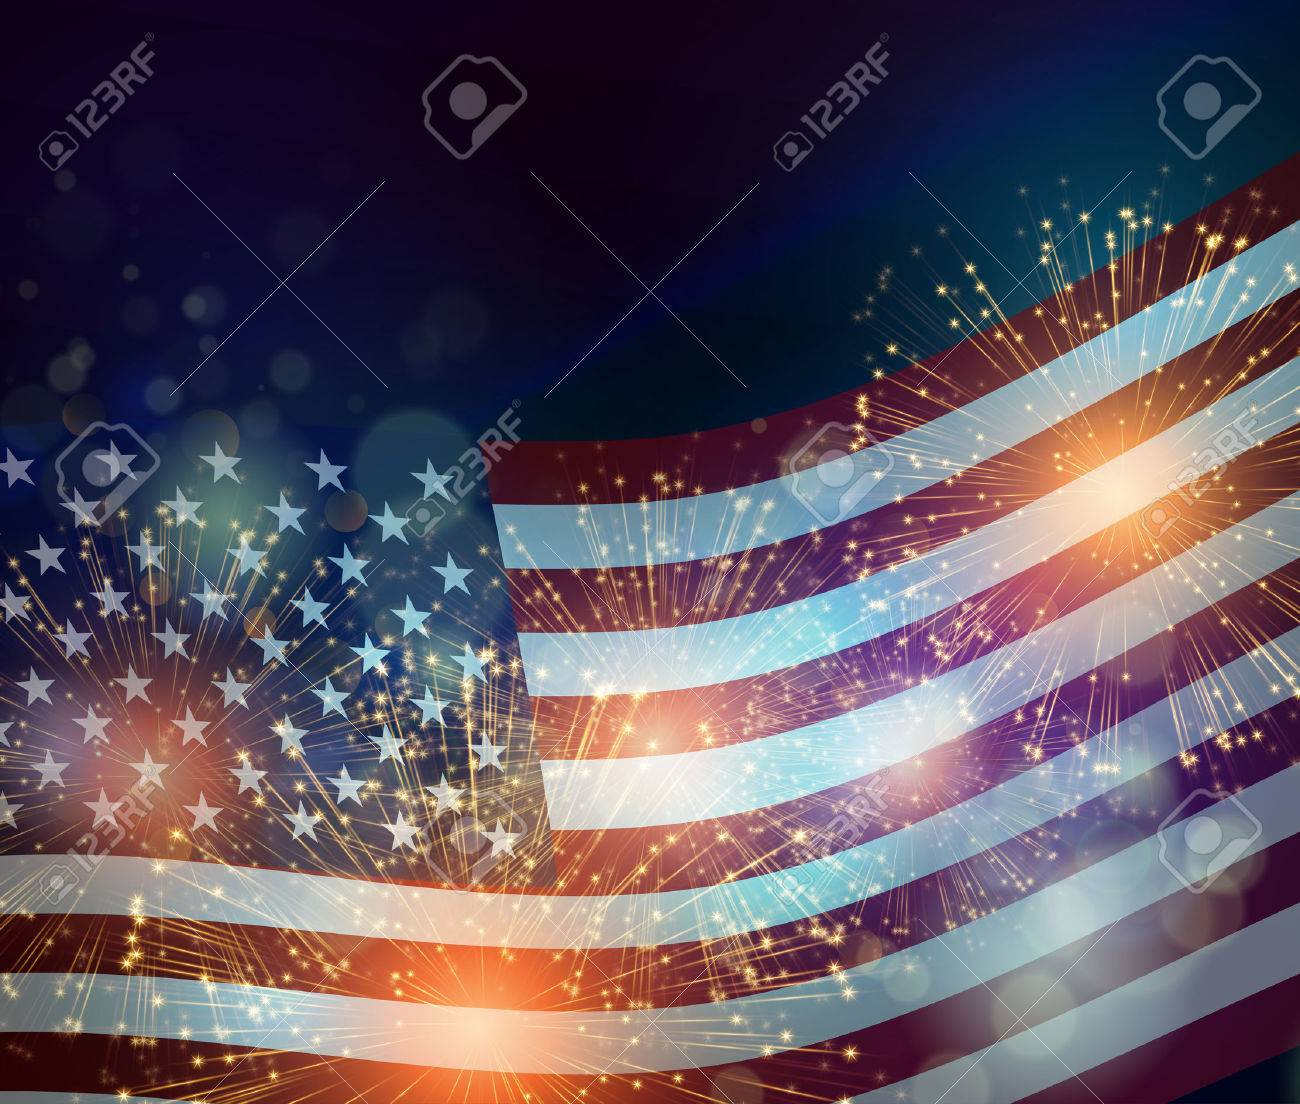 United States flag. Fireworks background for USA Independence Day. Fourth of July celebrate - 54436549